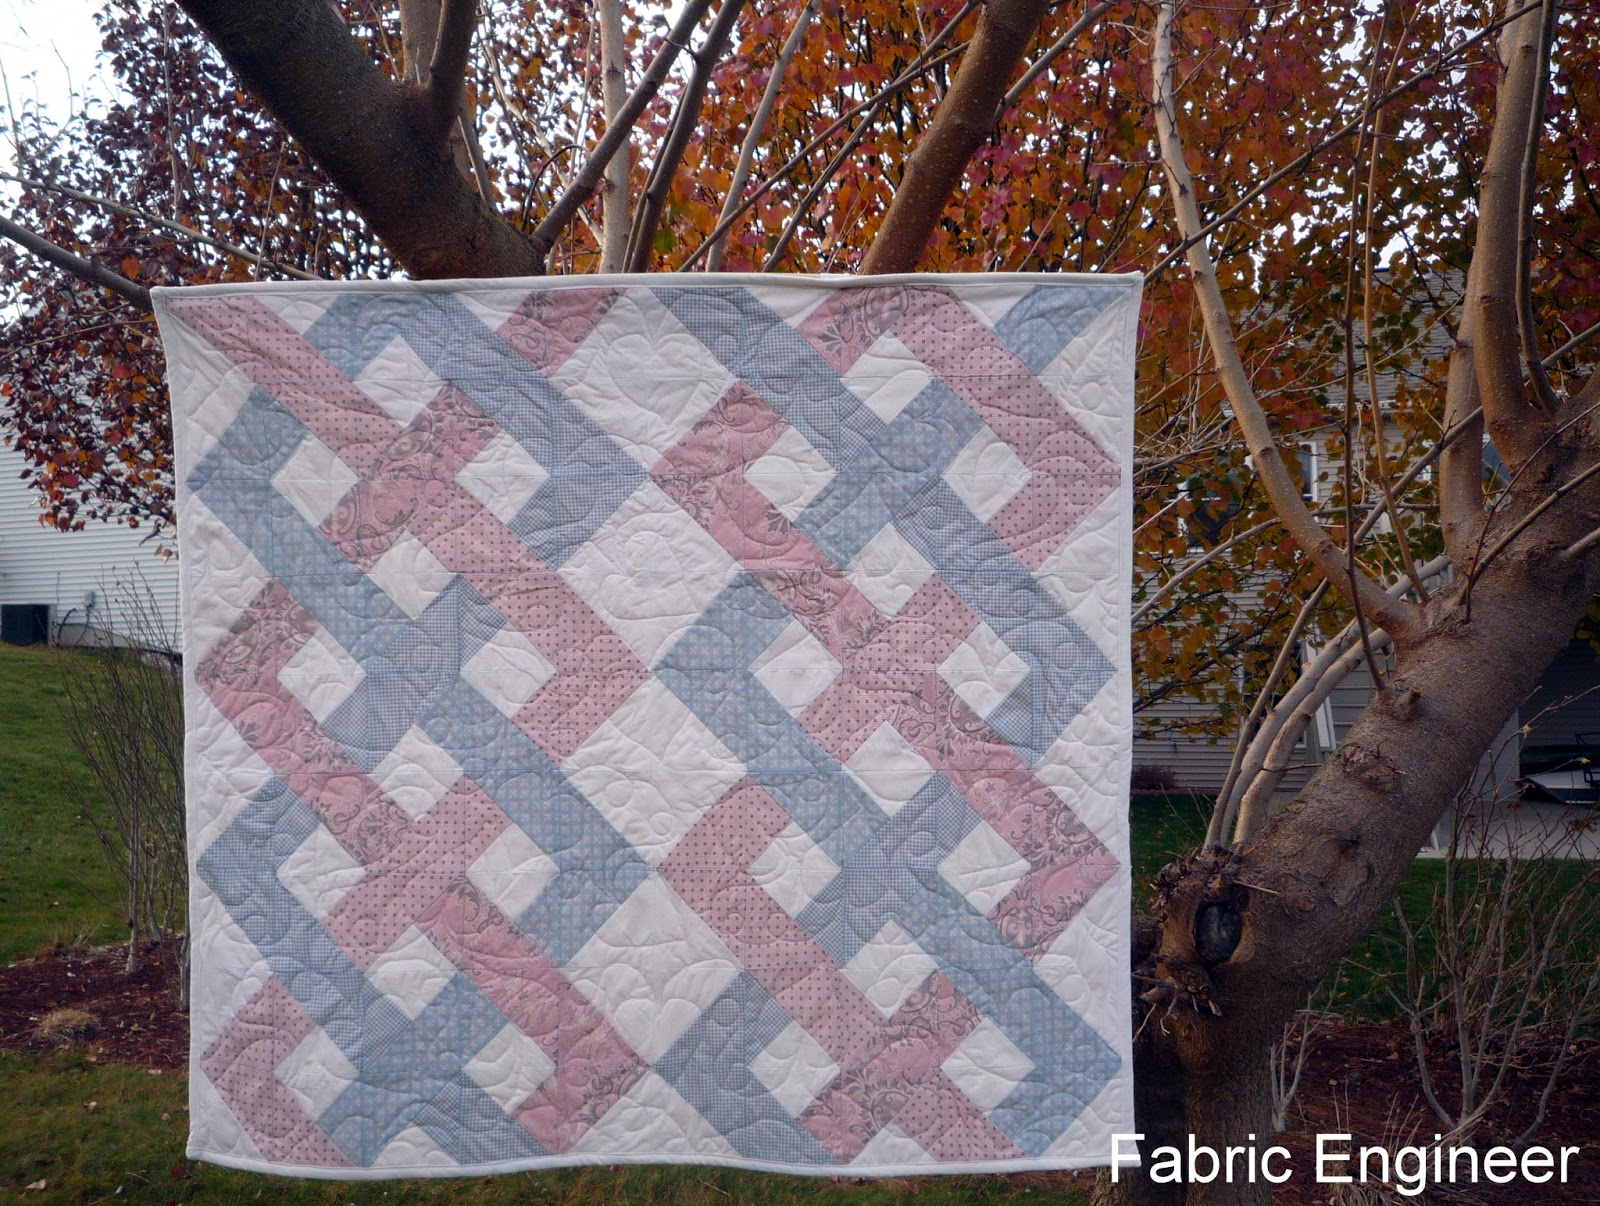 Fabric Engineer Finished Quilts 2010 2016